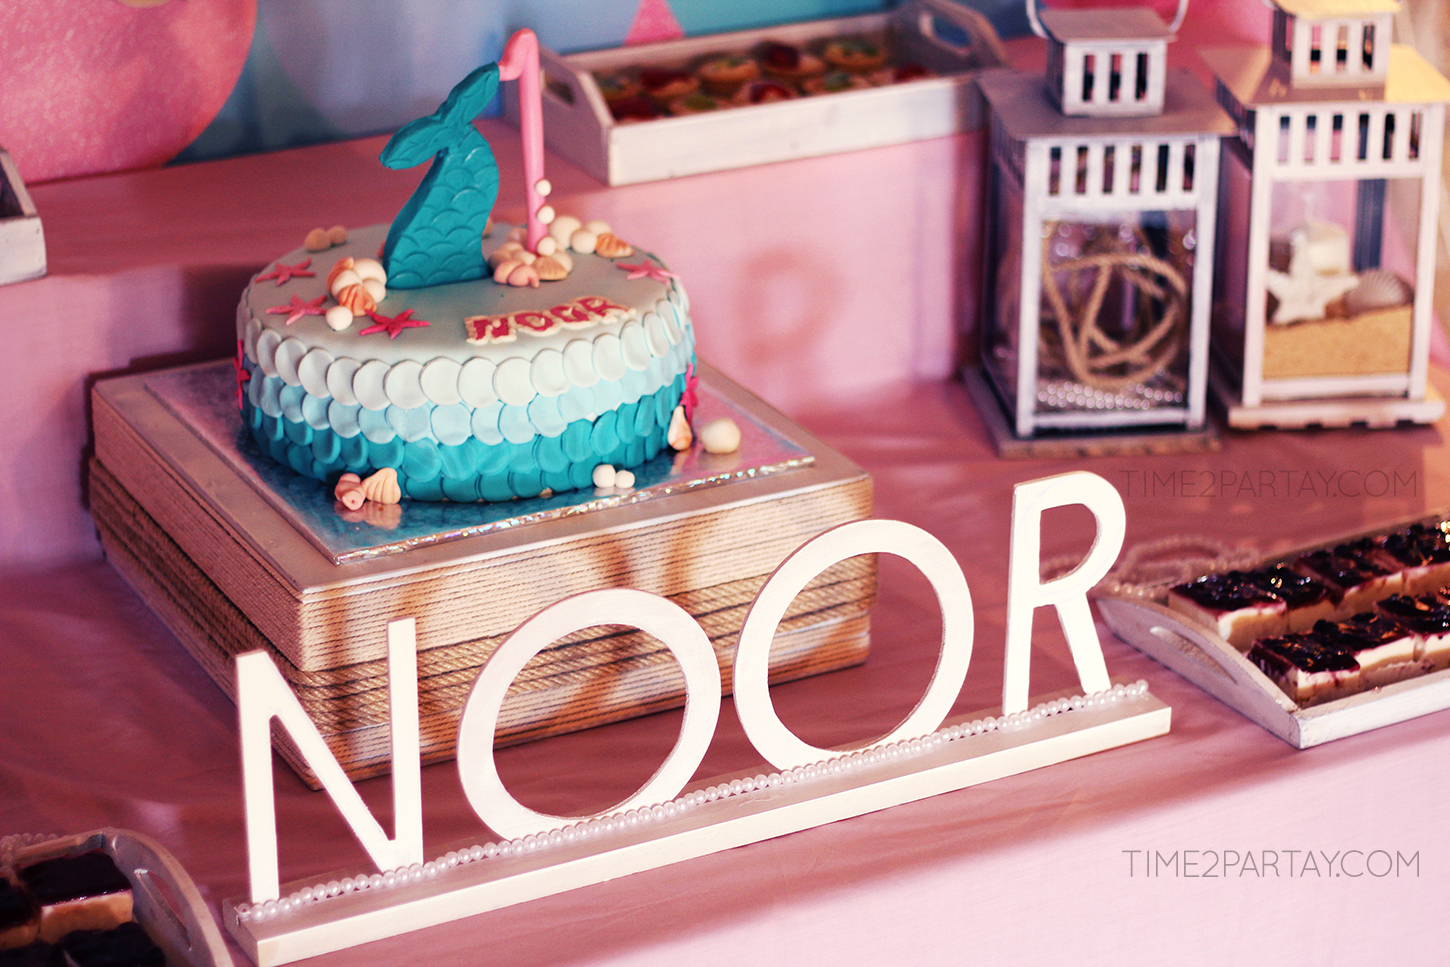 Noor S Mermaid Themed First Birthday Time2partay Com